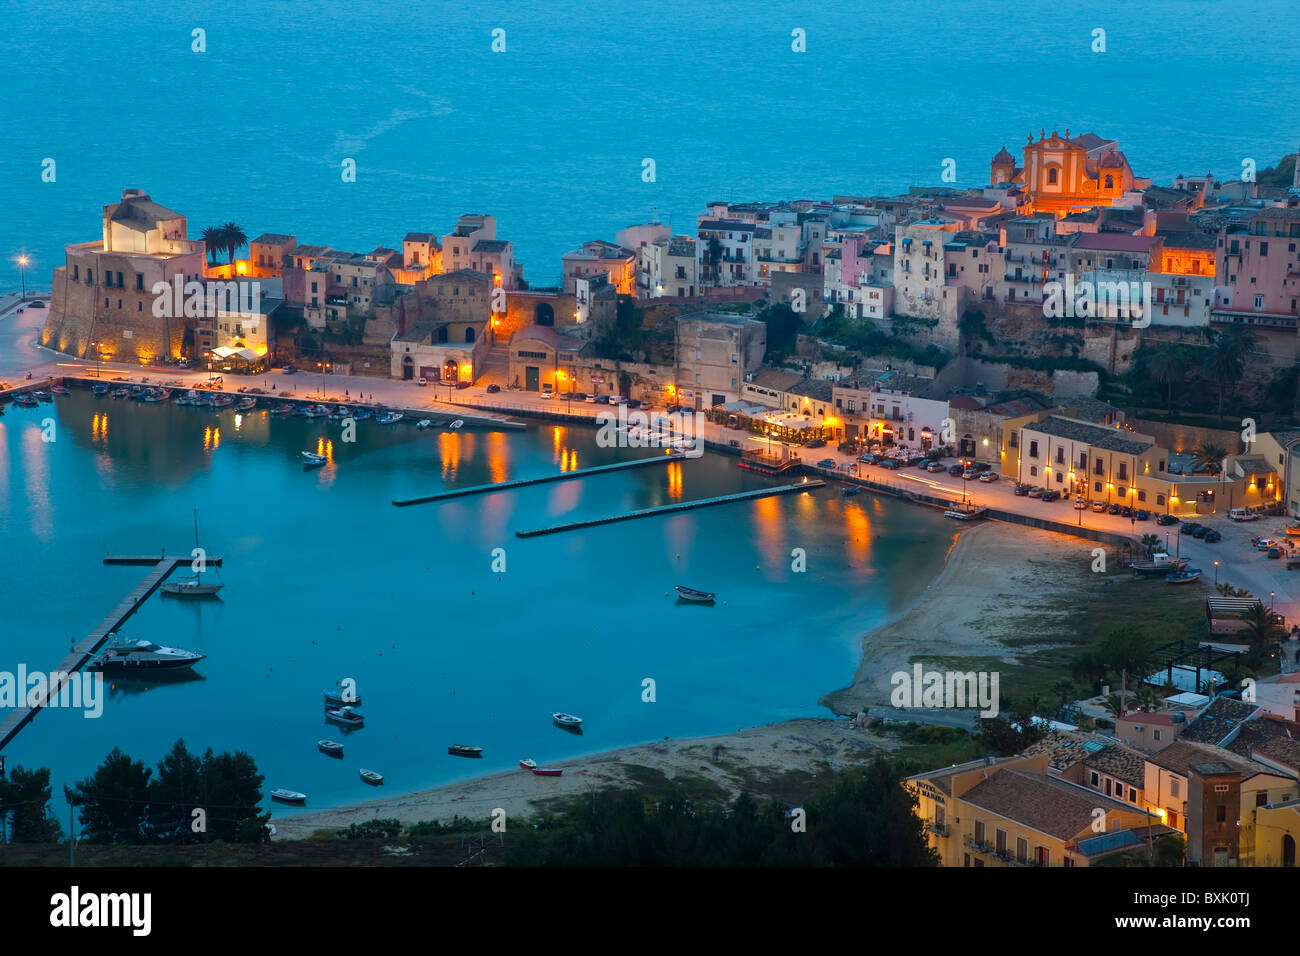 View over harbour at dusk, Castellammare del Golfo, Sicily, Italy - Stock Image